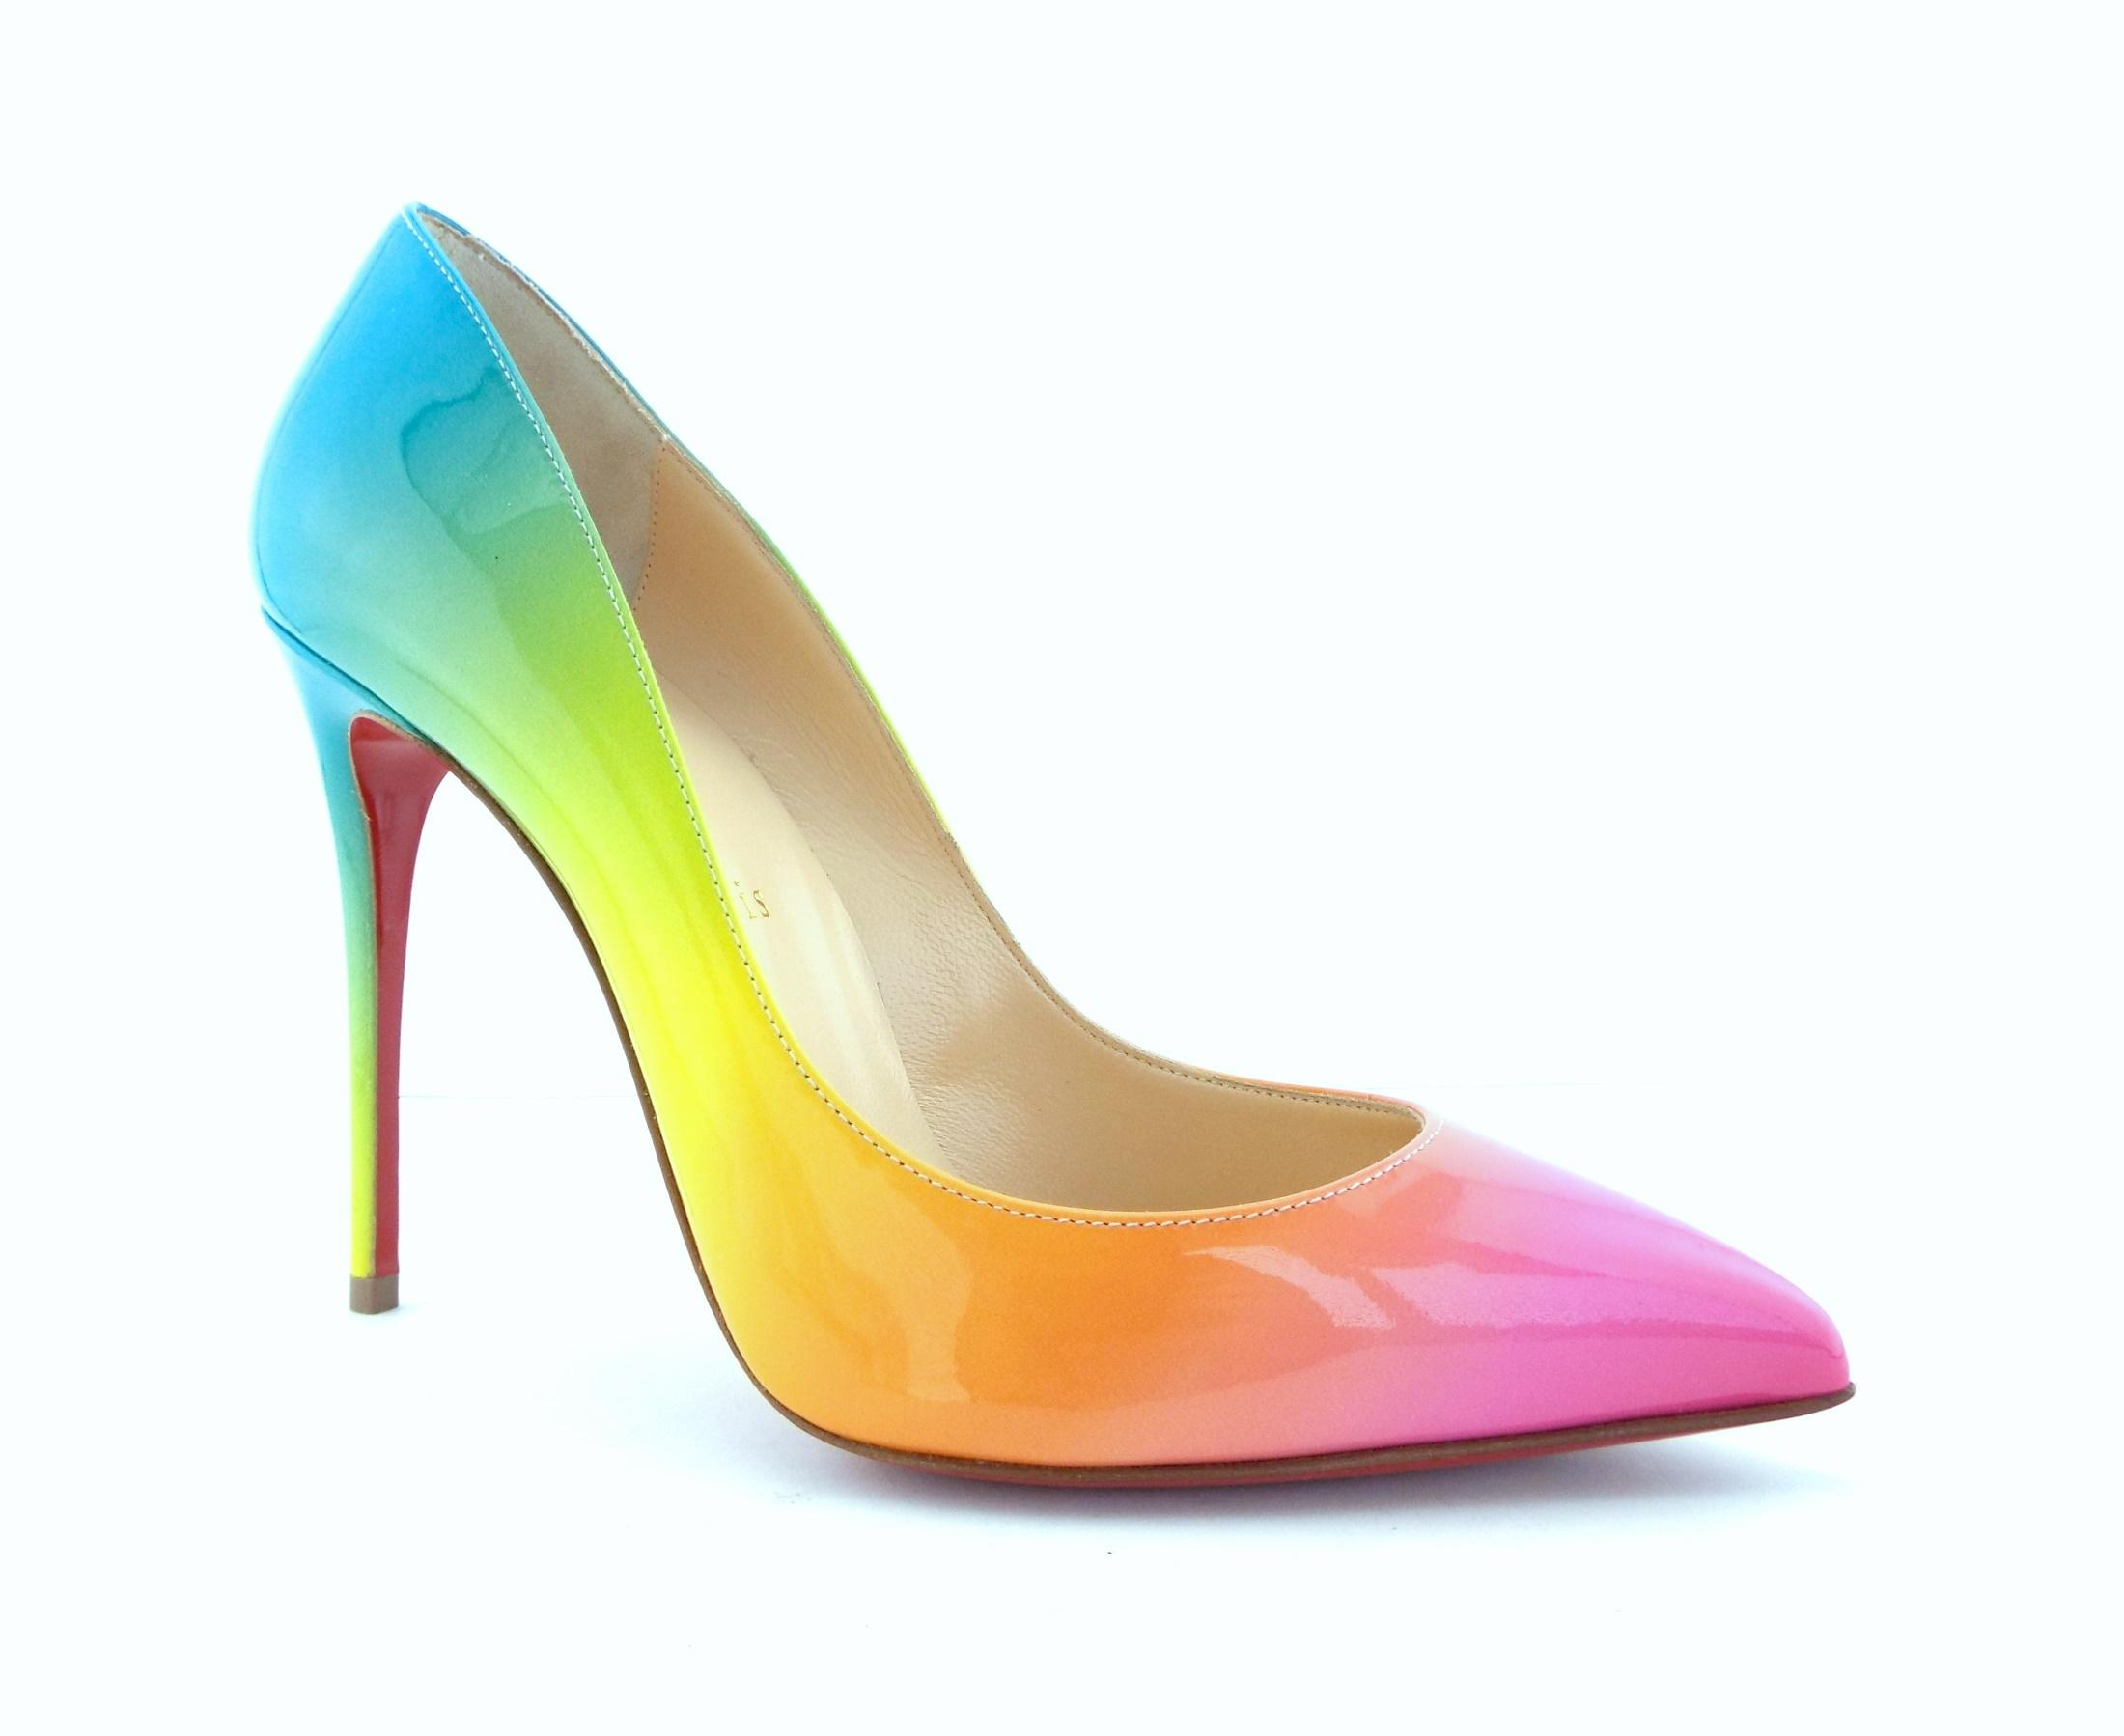 Christian Louboutin Multi Color Patent Leather Pointed Toe Pumps US Size EU 37 (Approx. US Pumps 7) Regular (M, B) eb13b7